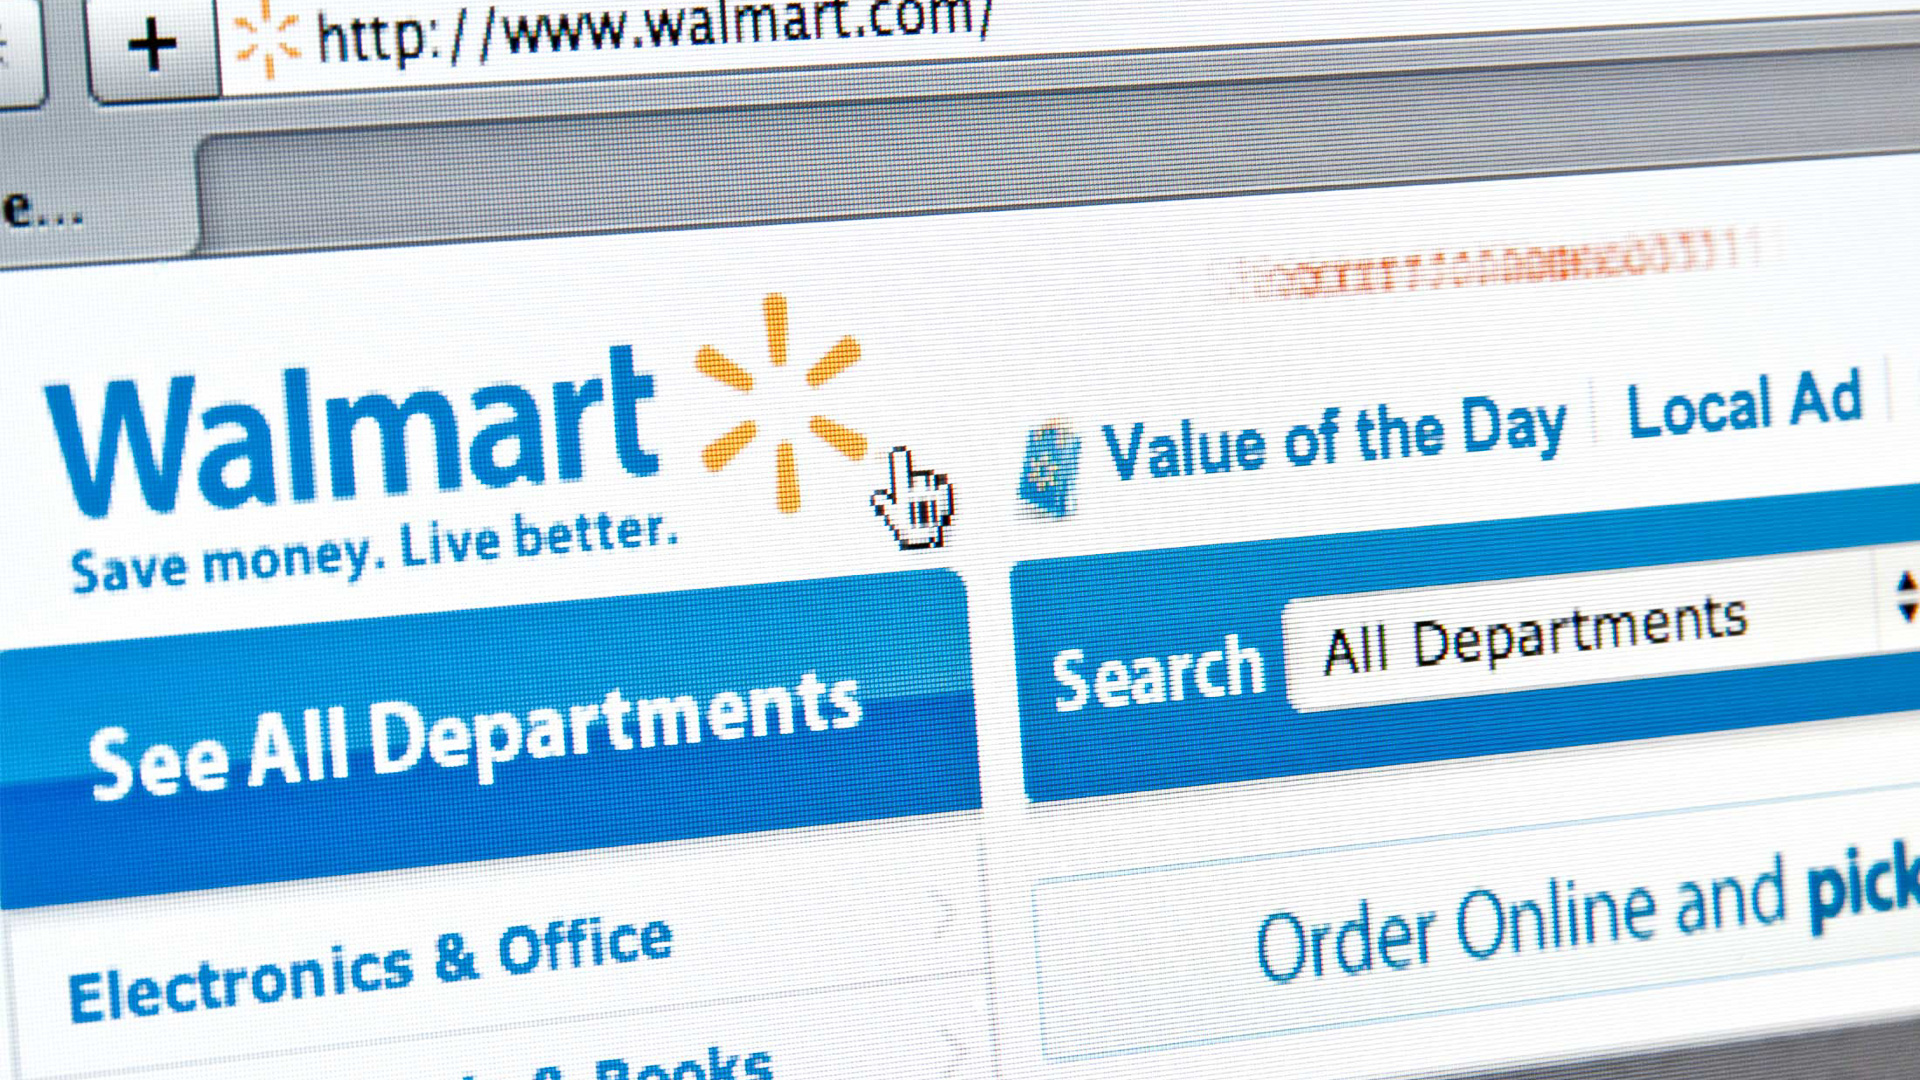 Saving Money With the Walmart Savings Catcher. Using the Walmart scanner savings tool is straightforward. You have the option of submitting your receipt number via the Walmart app, online or through Walmart Pay. Savings Catcher will automatically scan advertisements from top stores in your area to find lower prices that match eligible items listed on your receipt.